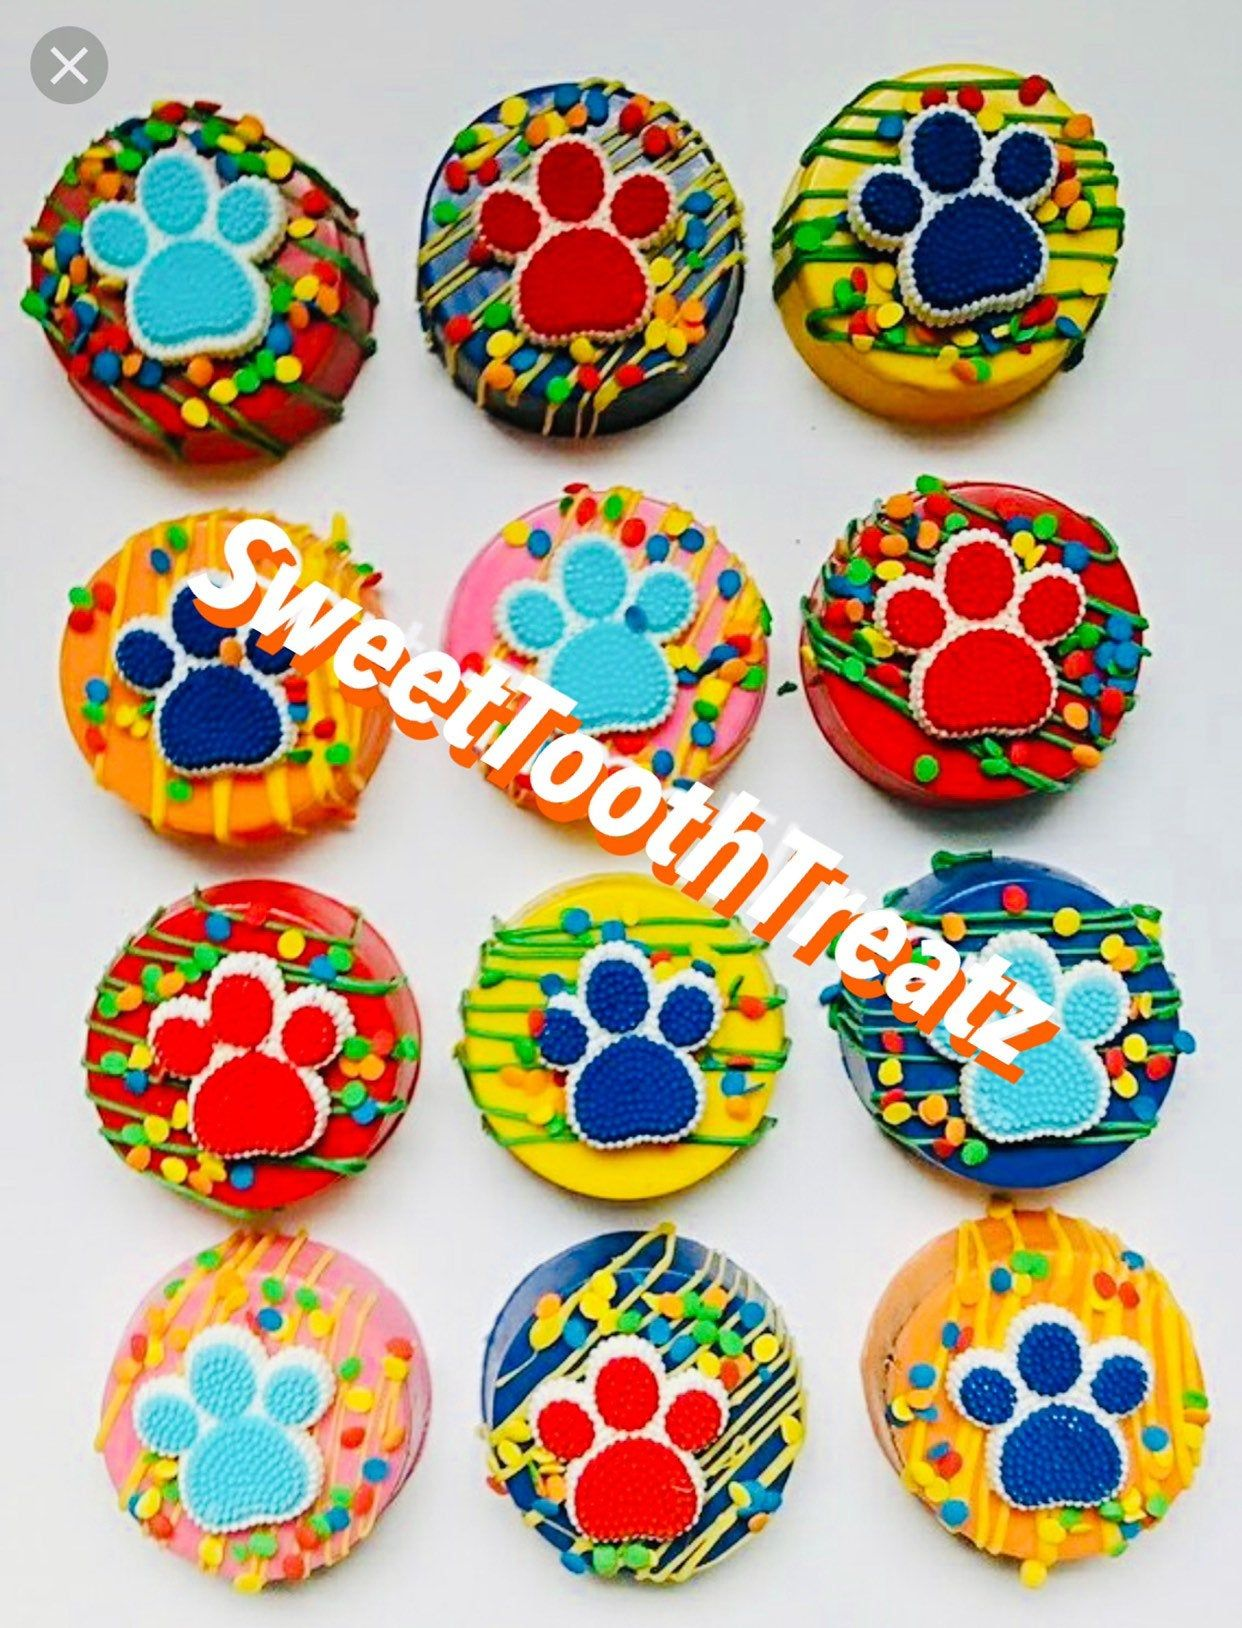 Paw Patrol Chocolate Oreos - Chocolate oreos, Paw patrol, Chocolate covered oreos, Oreo, Paw patrol treats, Chocolate lollipops - Celebrate your little one's birthday with our pawsome PAW Patrol chocolate Oreos! PAW Patrol Oreos can be customized to suit your color scheme  Each chocolate Oreo is placed into a cello bag and tied with a color ribbon of your choice  Please note sold by the dozen (12)